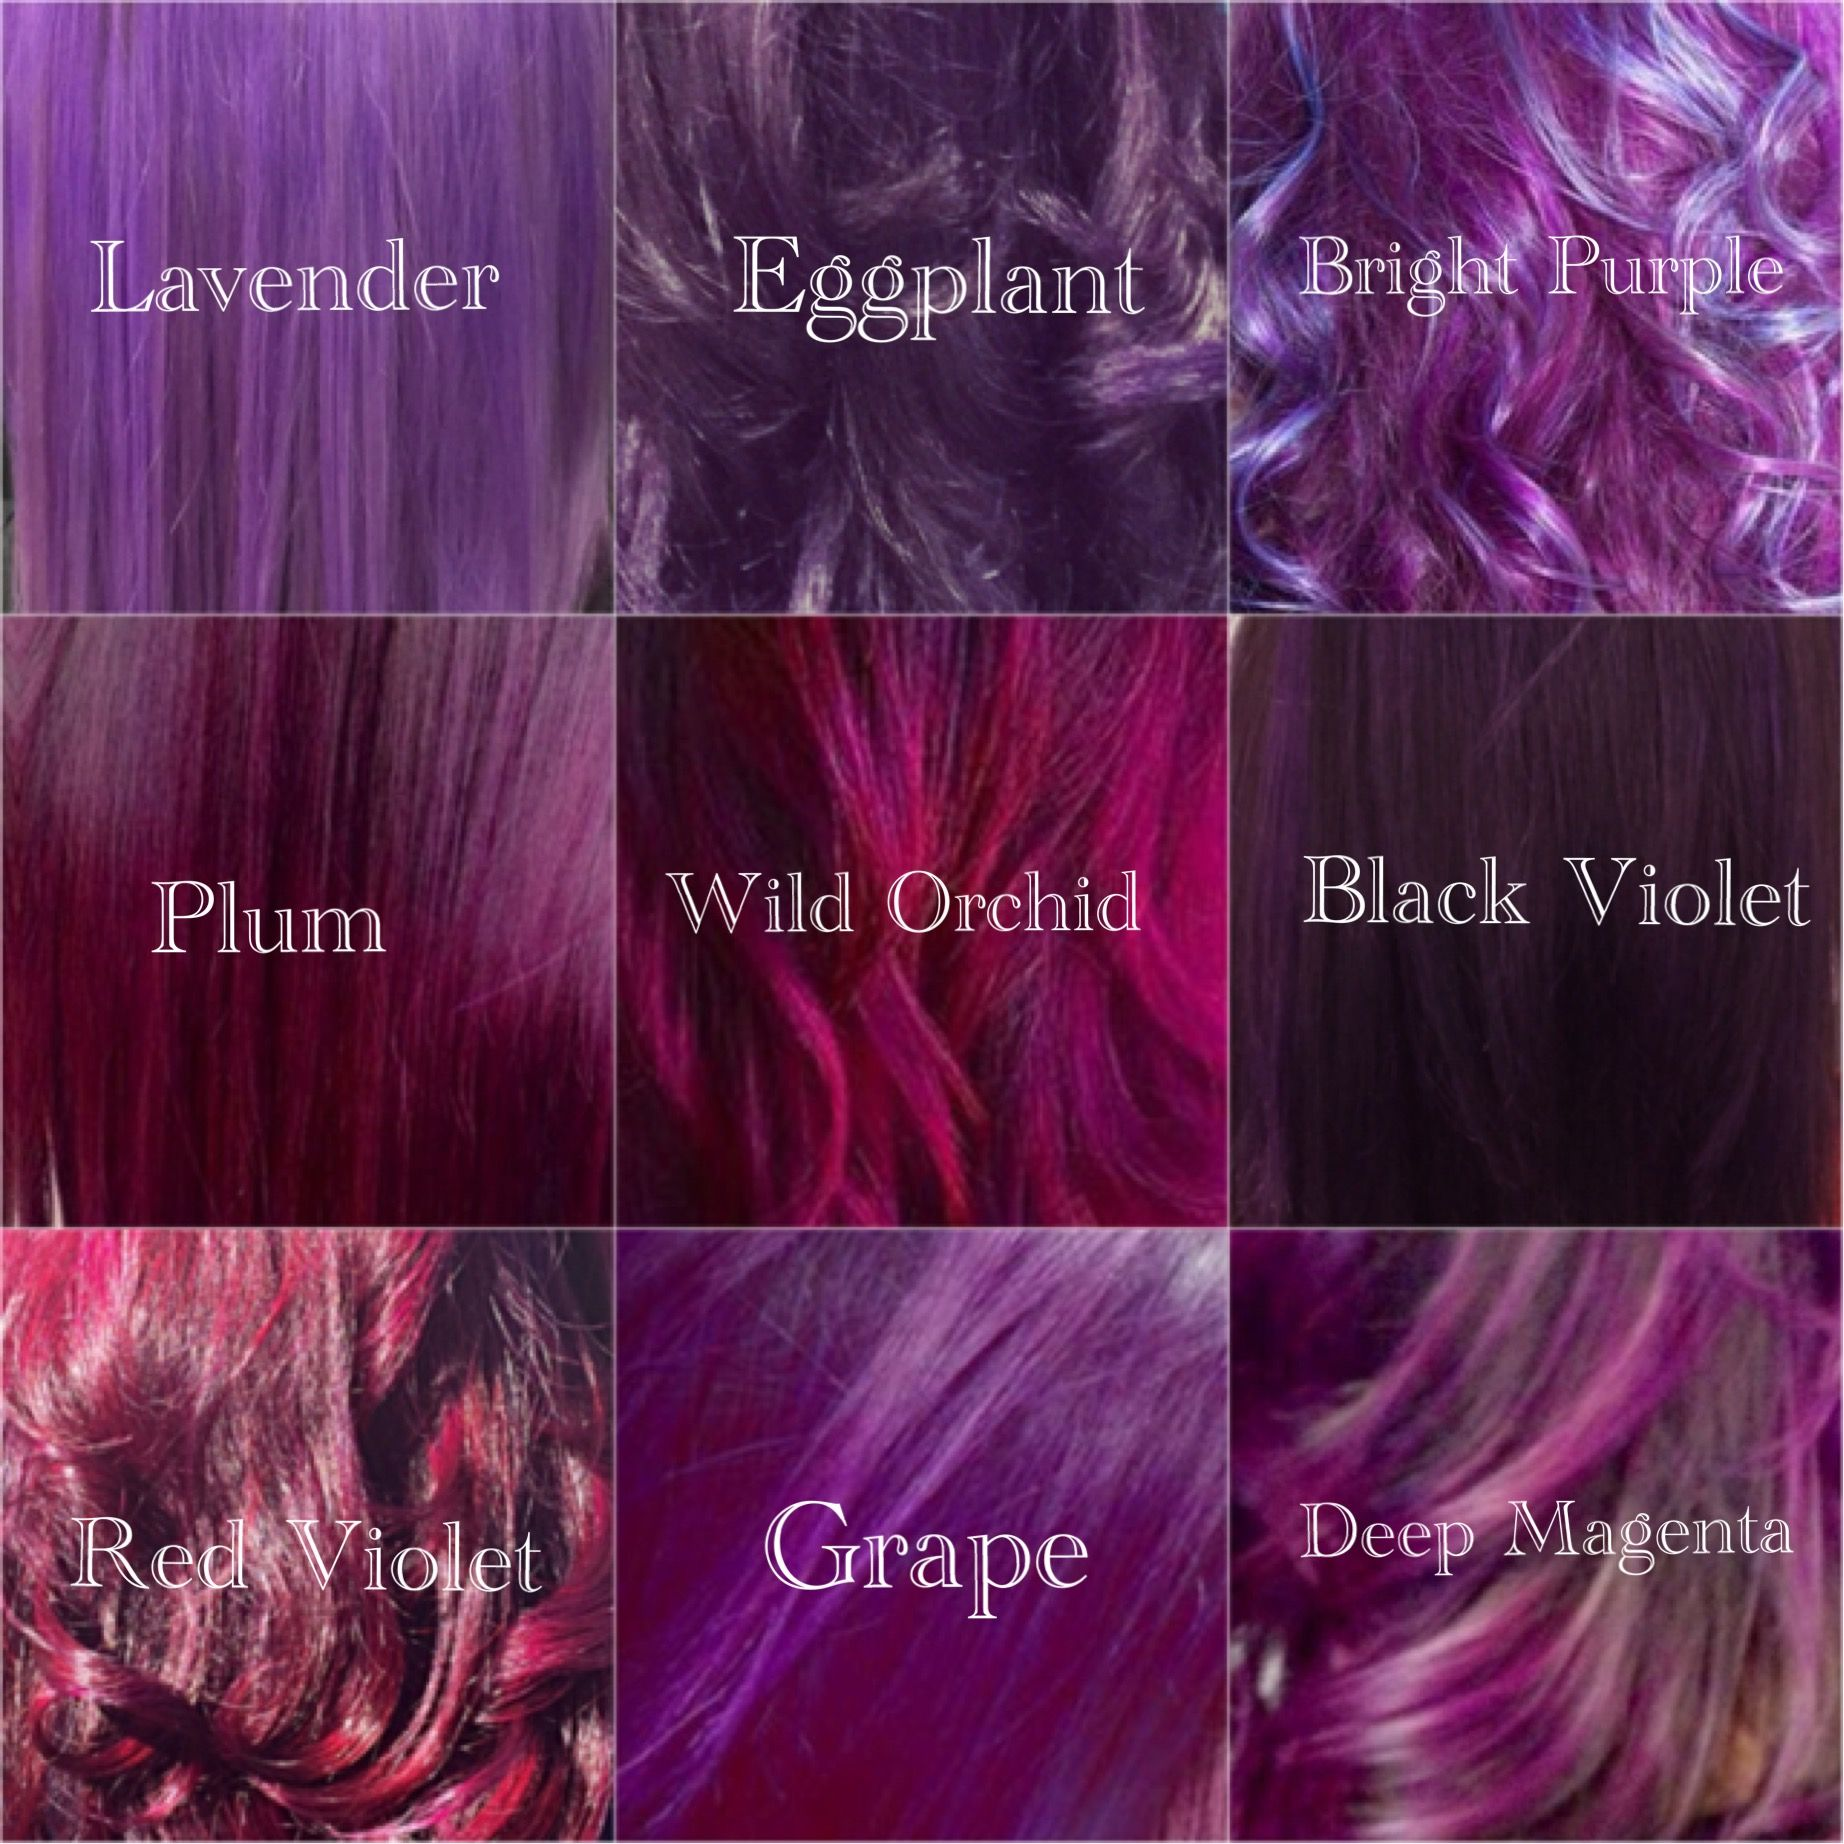 My Shades Of Violet Hair Color Purple Tones Lavander Eggplant Magenta Wild Orchid Plum Blue Haircolor Purplehair Jenniferwarner